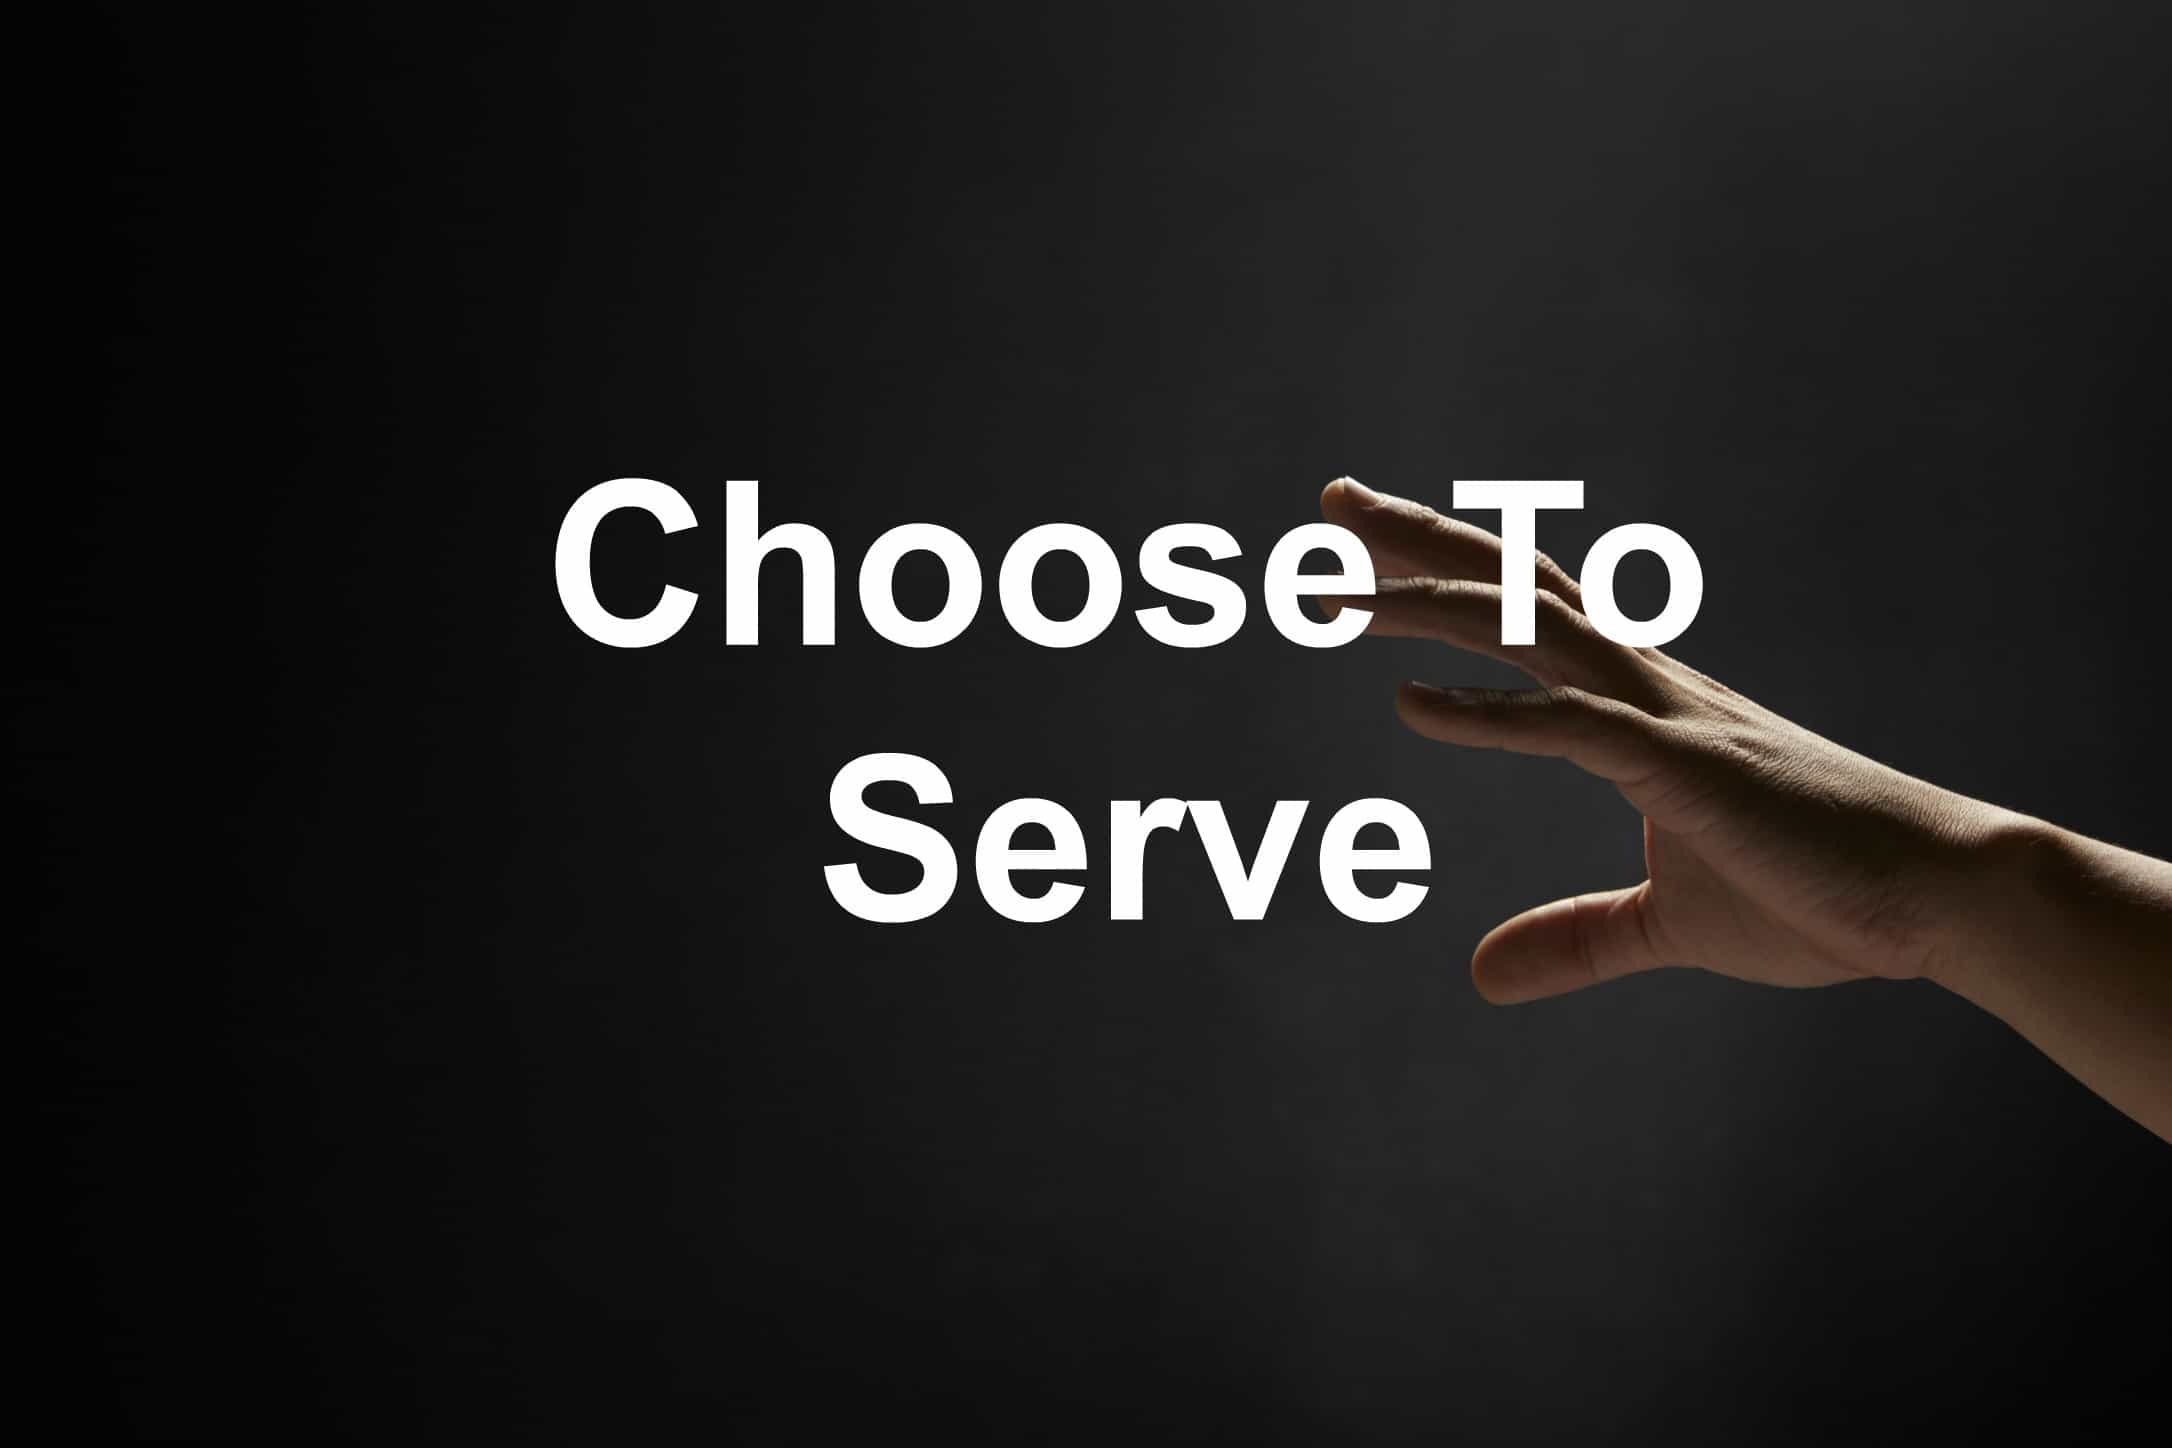 Be a servant leader